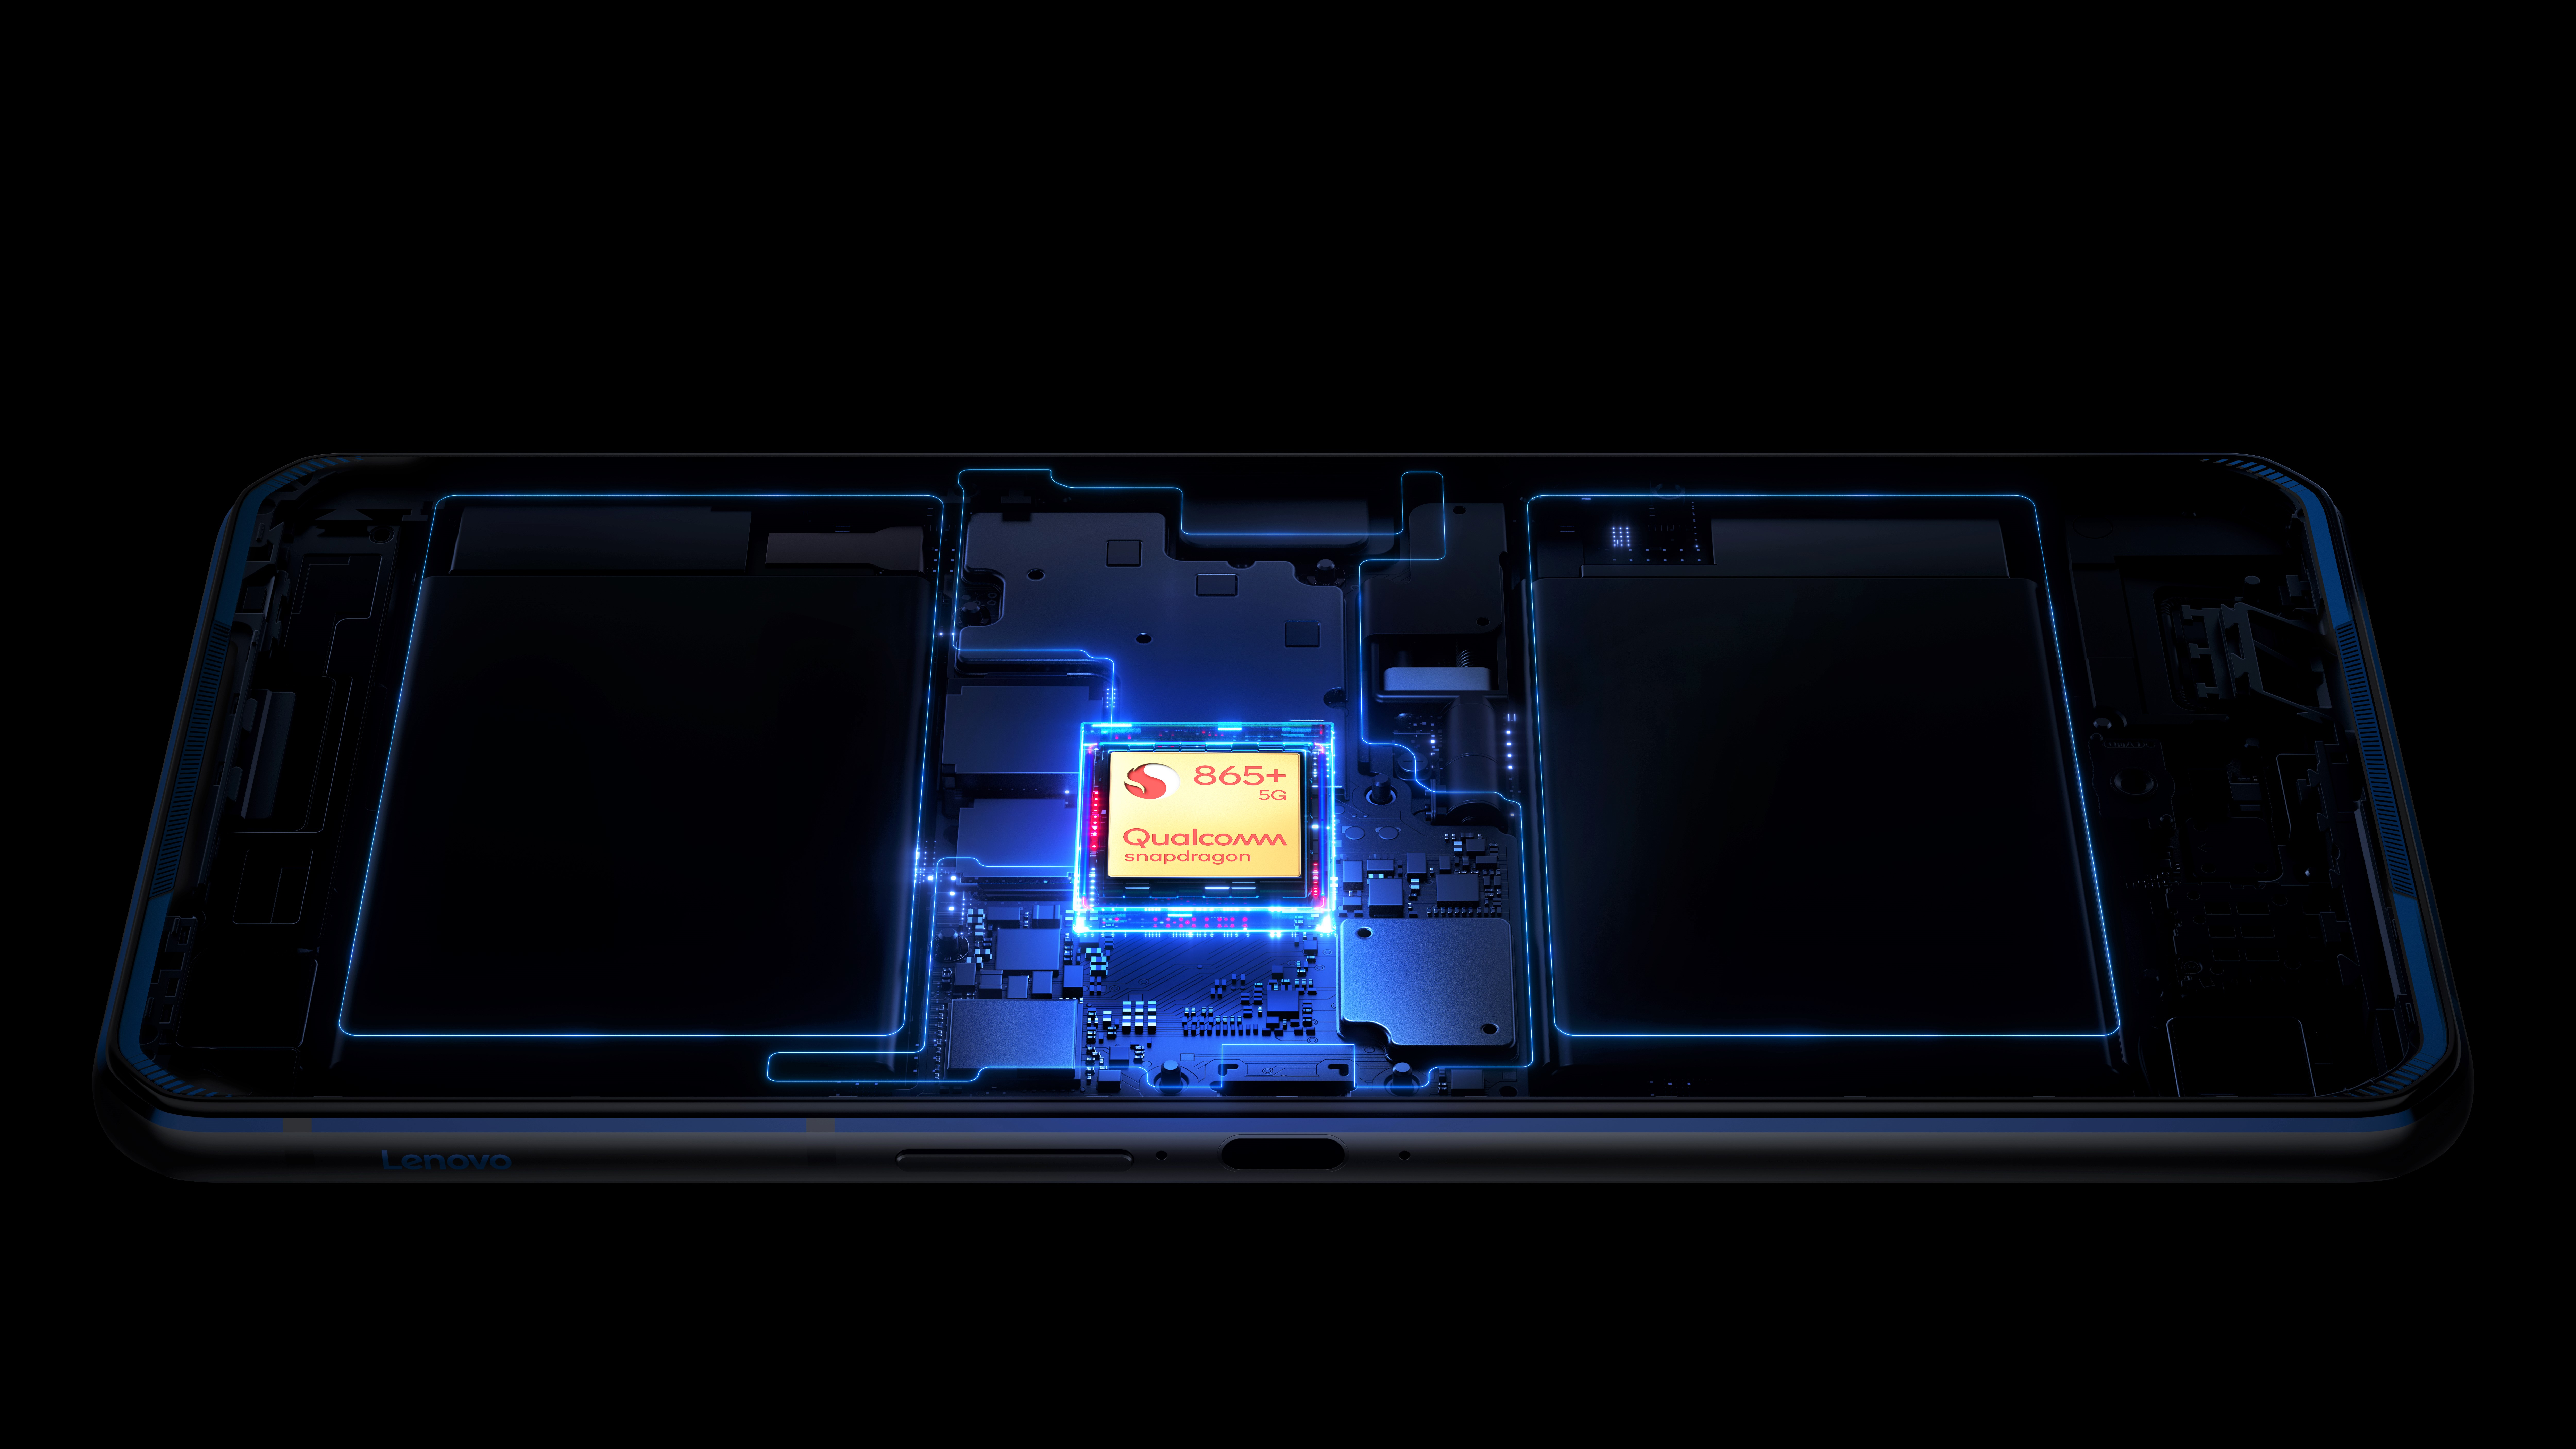 Asus to launch Rog Phone 3 today: Details here